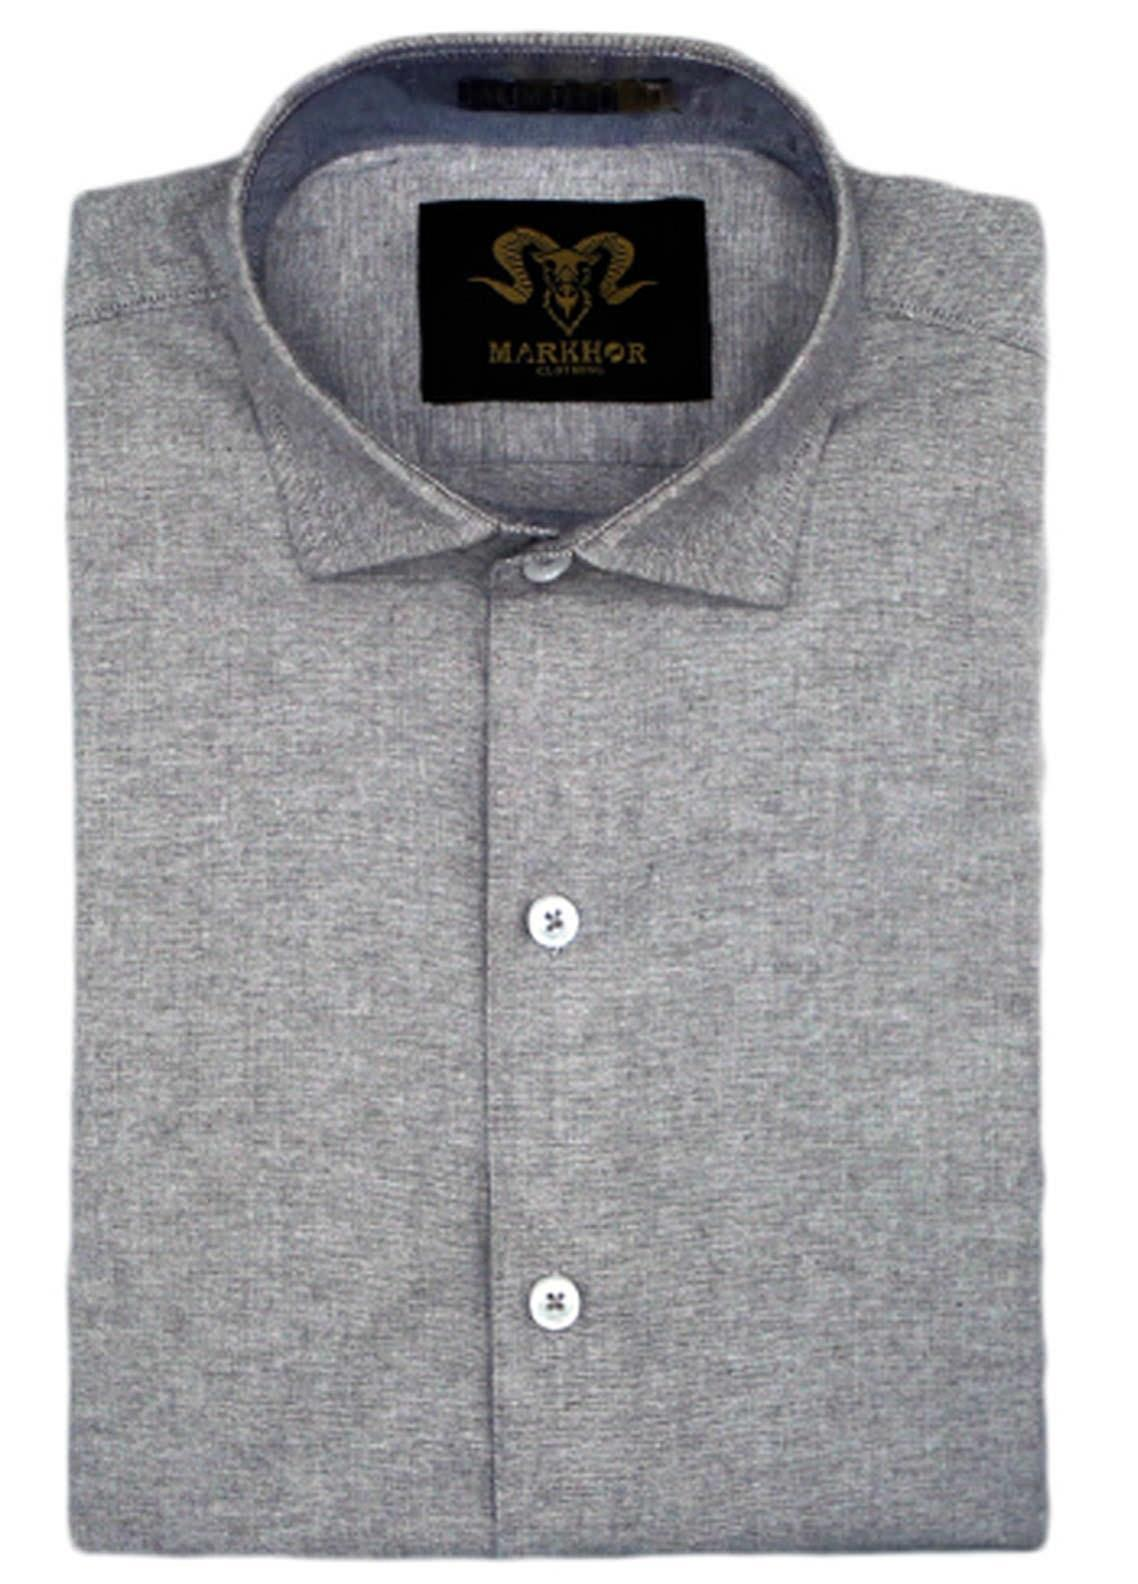 Markhor Clothing Chambray Cotton Formal Shirts for Men - Ash Grey  Chambray Cotton Slim Fit Formal Shirt